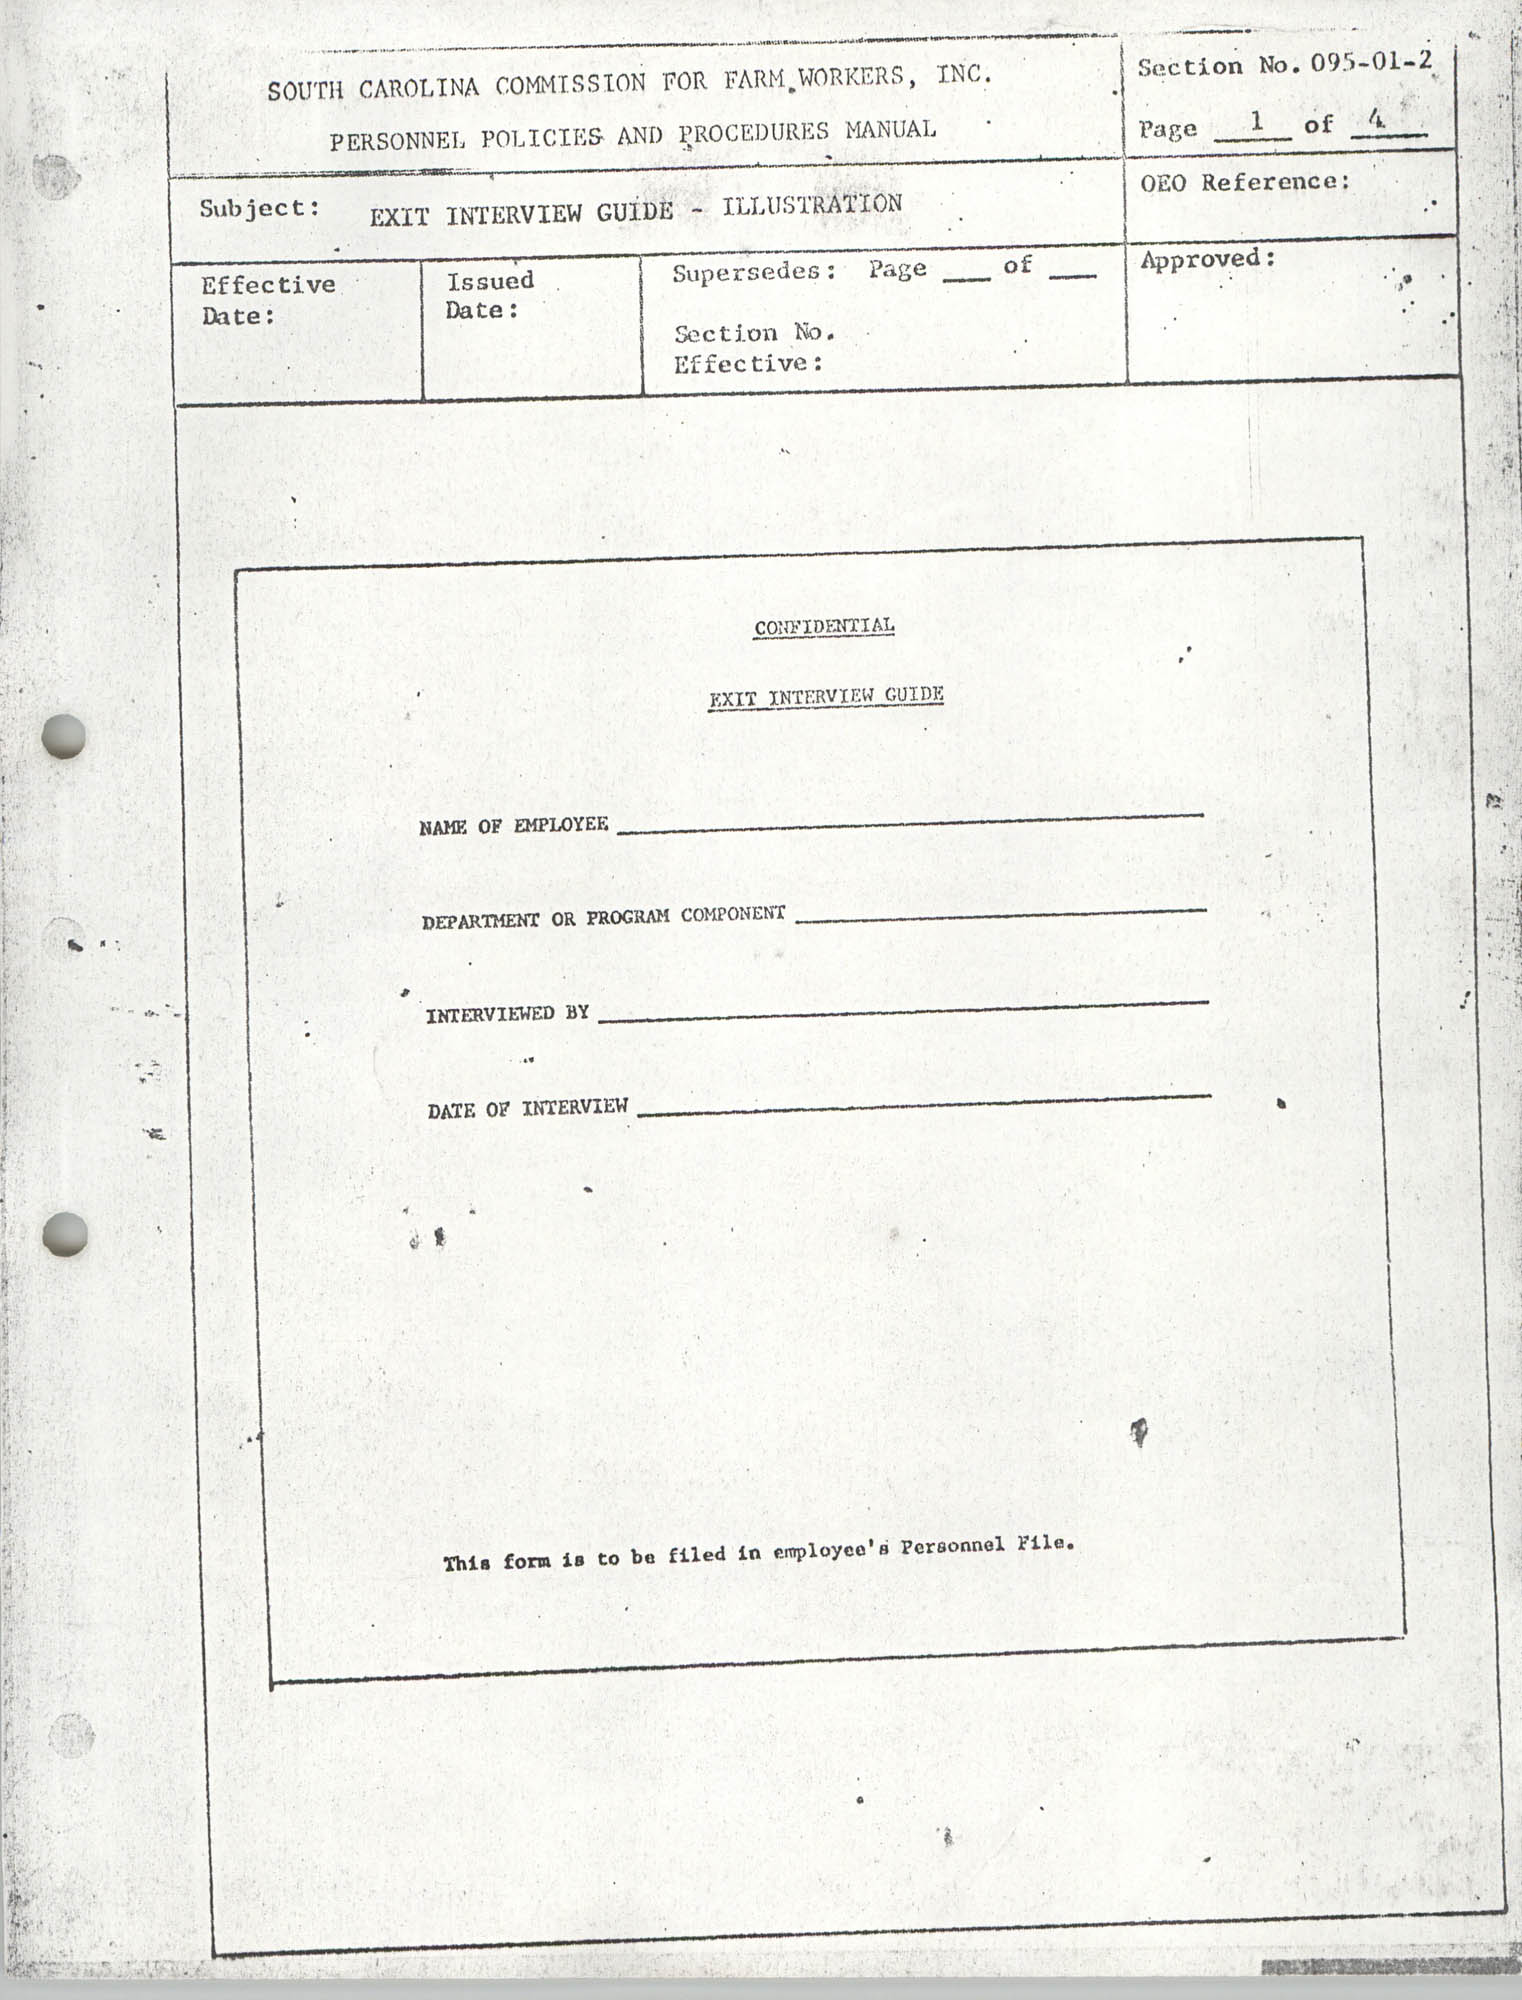 Personnel Policies and Procedures Manual, Section No. 095-01-2, Page 1